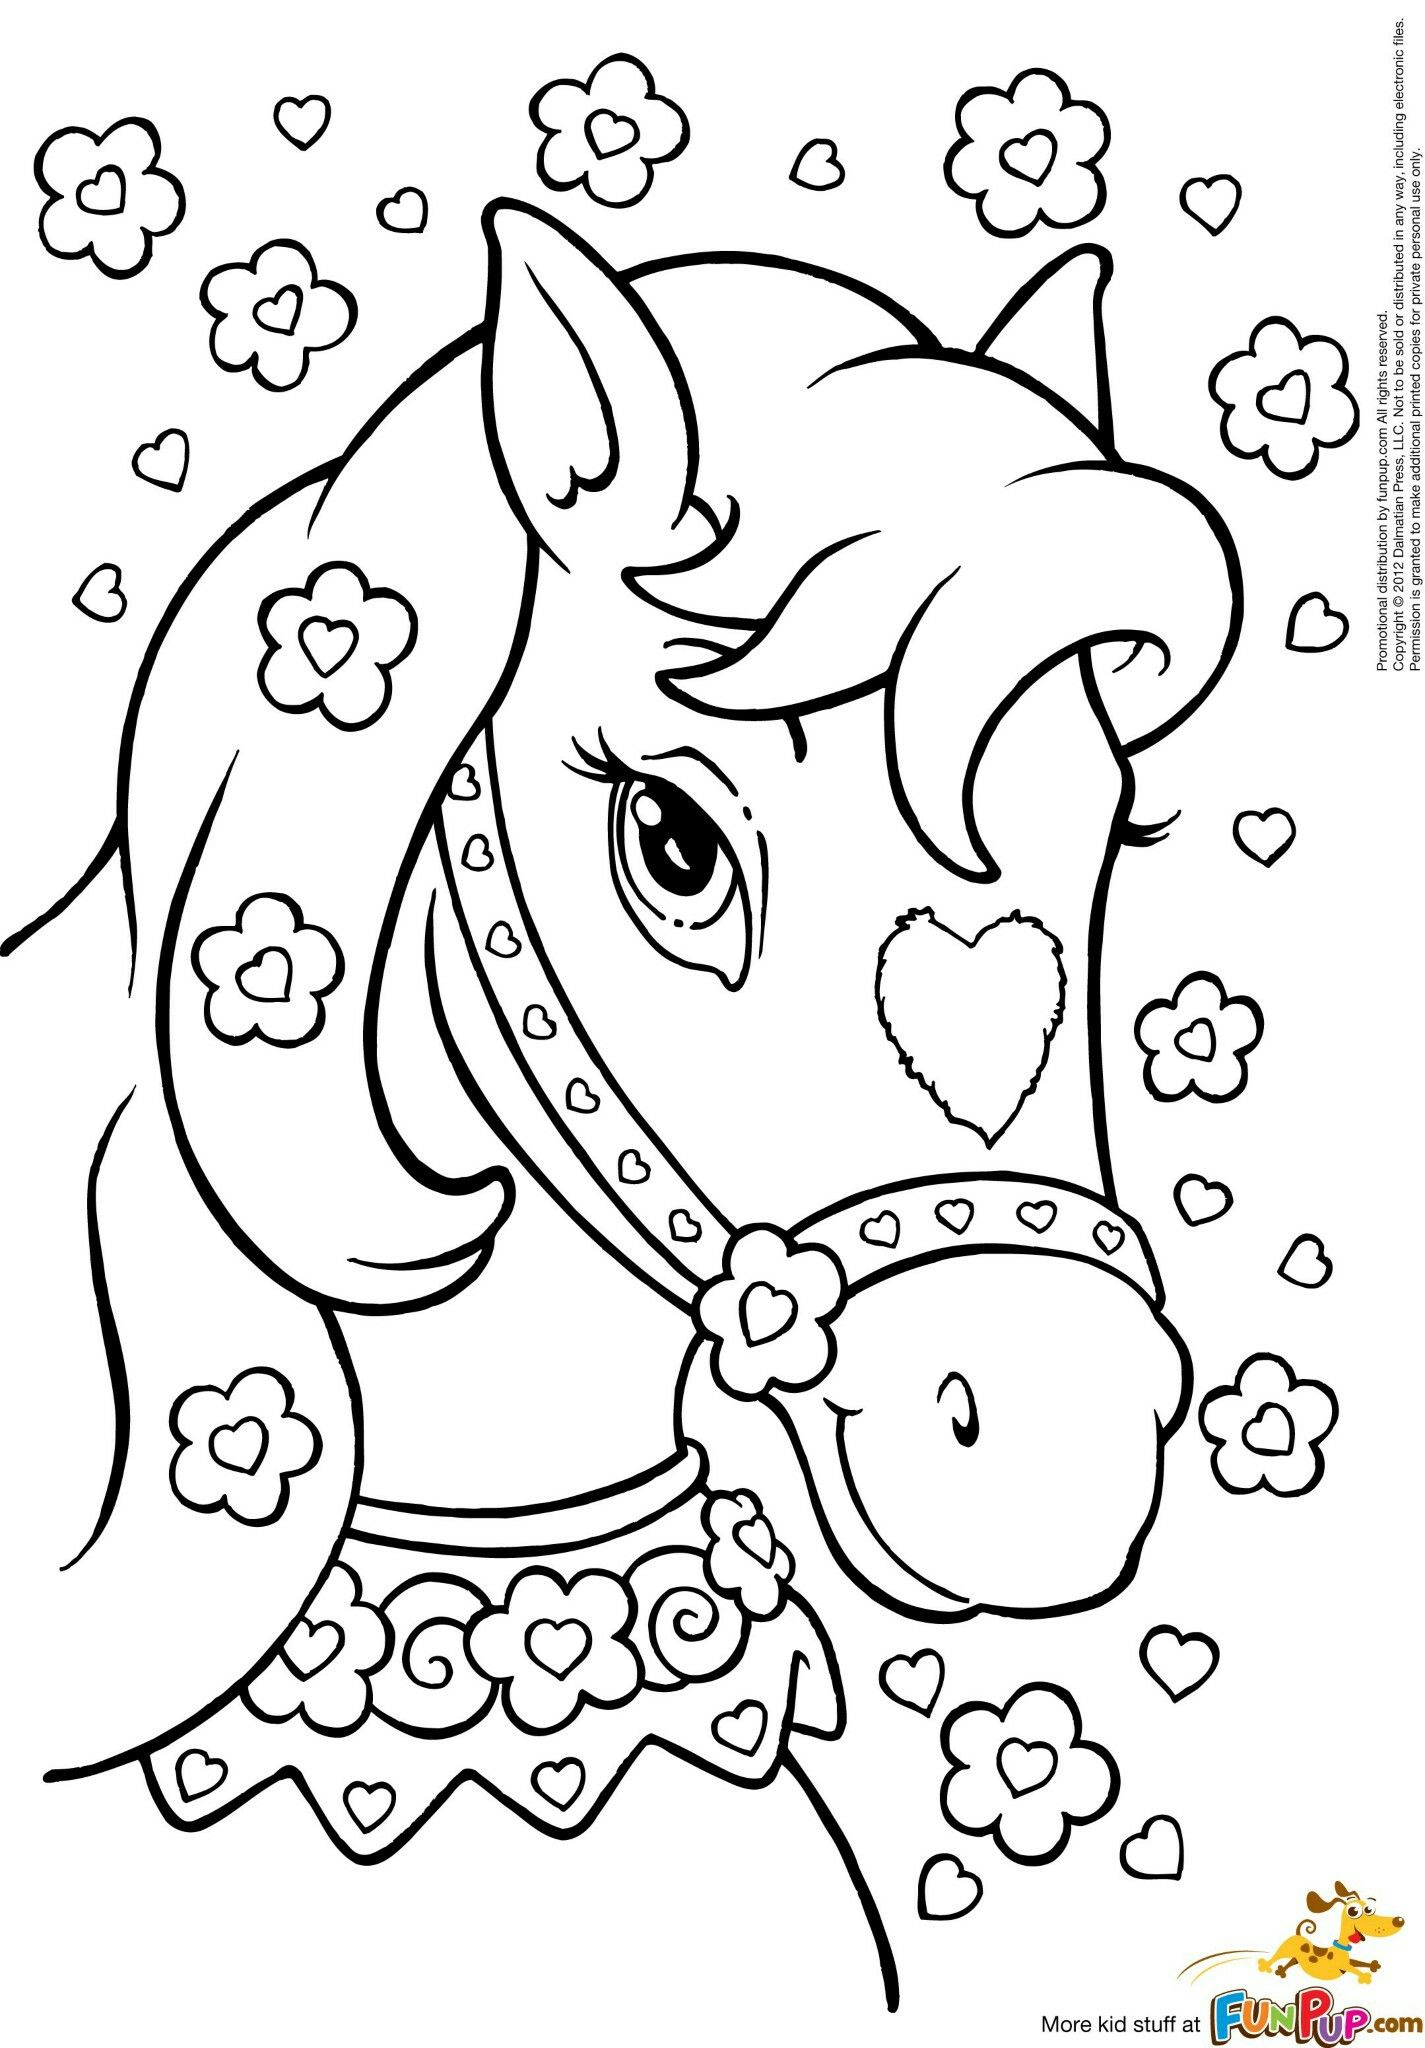 Pin by Elsa Ludick Smit on kids | Unicorn coloring pages ...